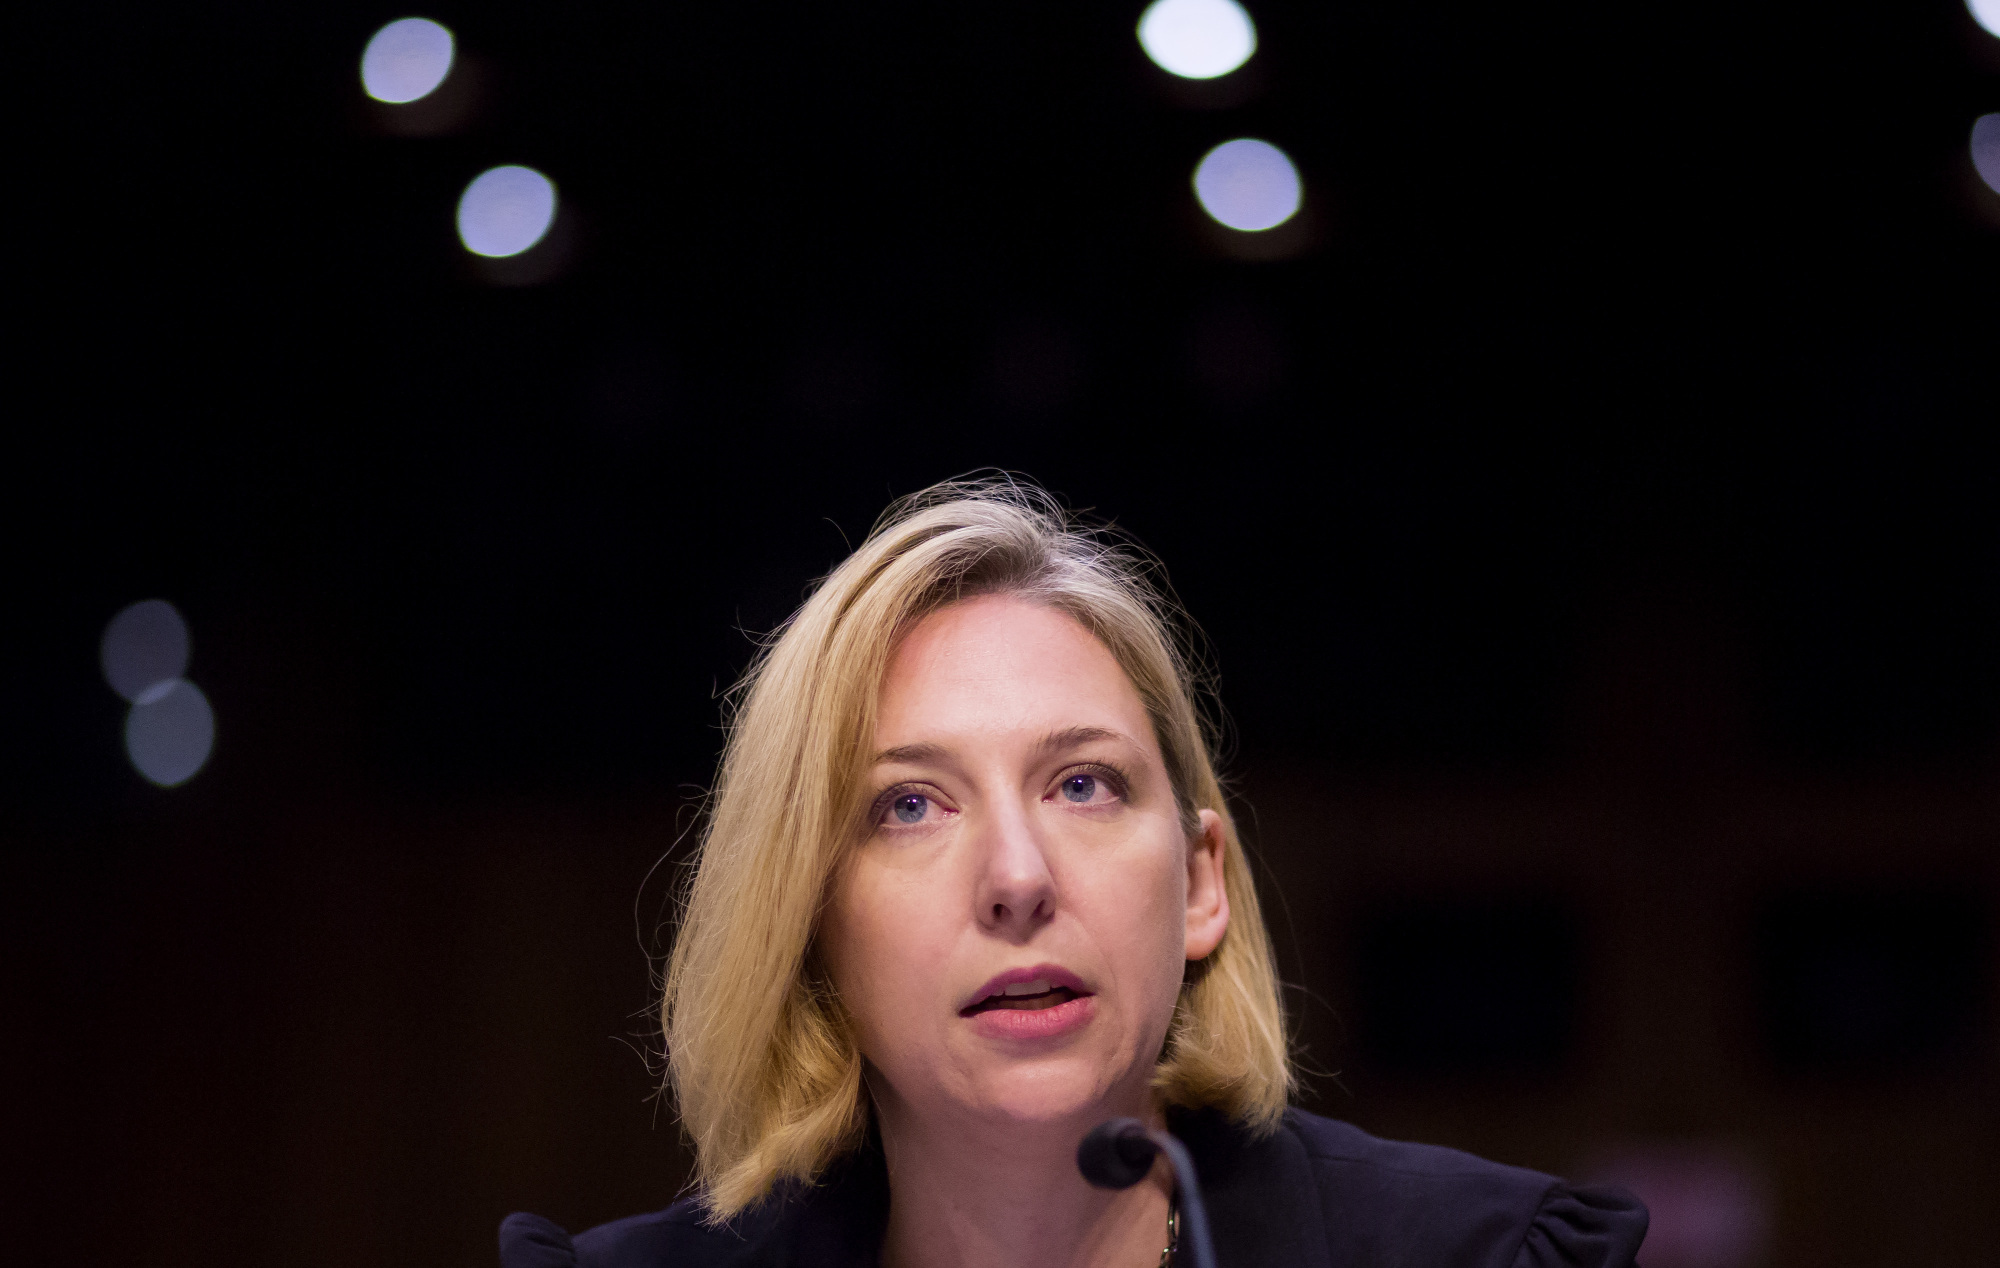 Jeanette Manfra, acting director of undersecretary, national protection and programs directorate at the Department of Homeland Security (DHS), speaks during a Senate Intelligence Committee hearing in Washington on Wednesday.   BLOOMBERG